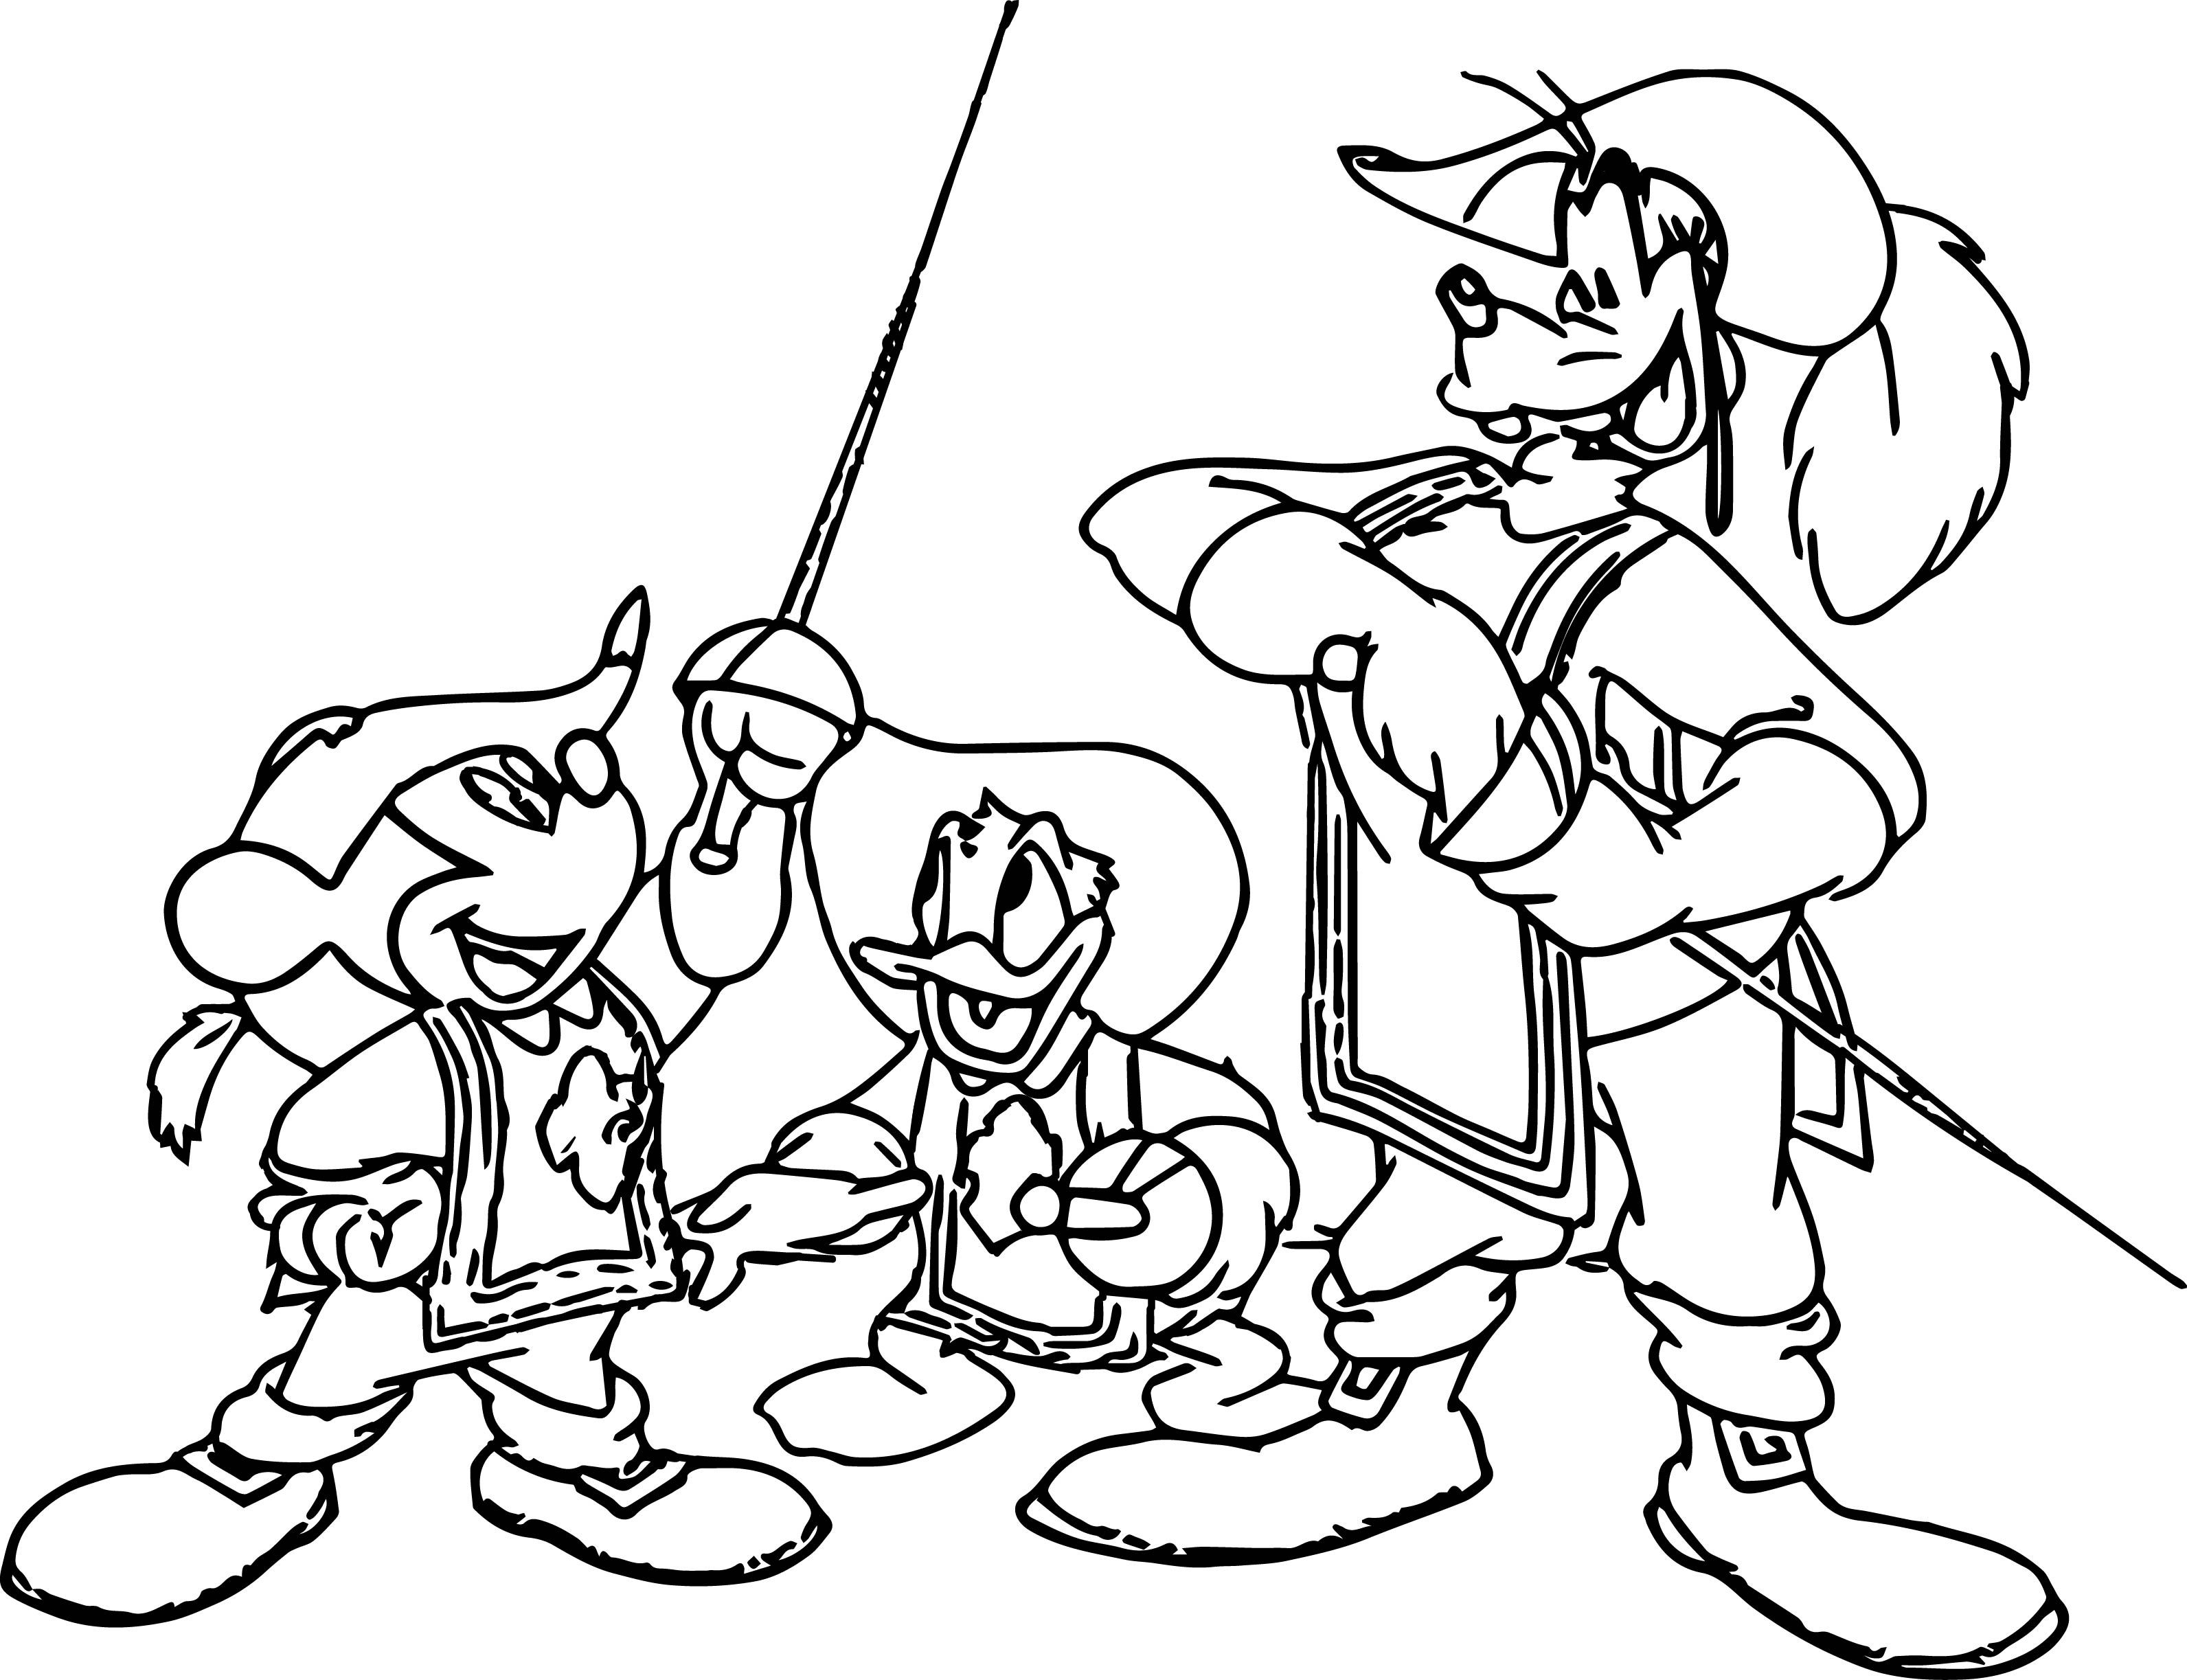 three muskateers coloring pages - photo#7